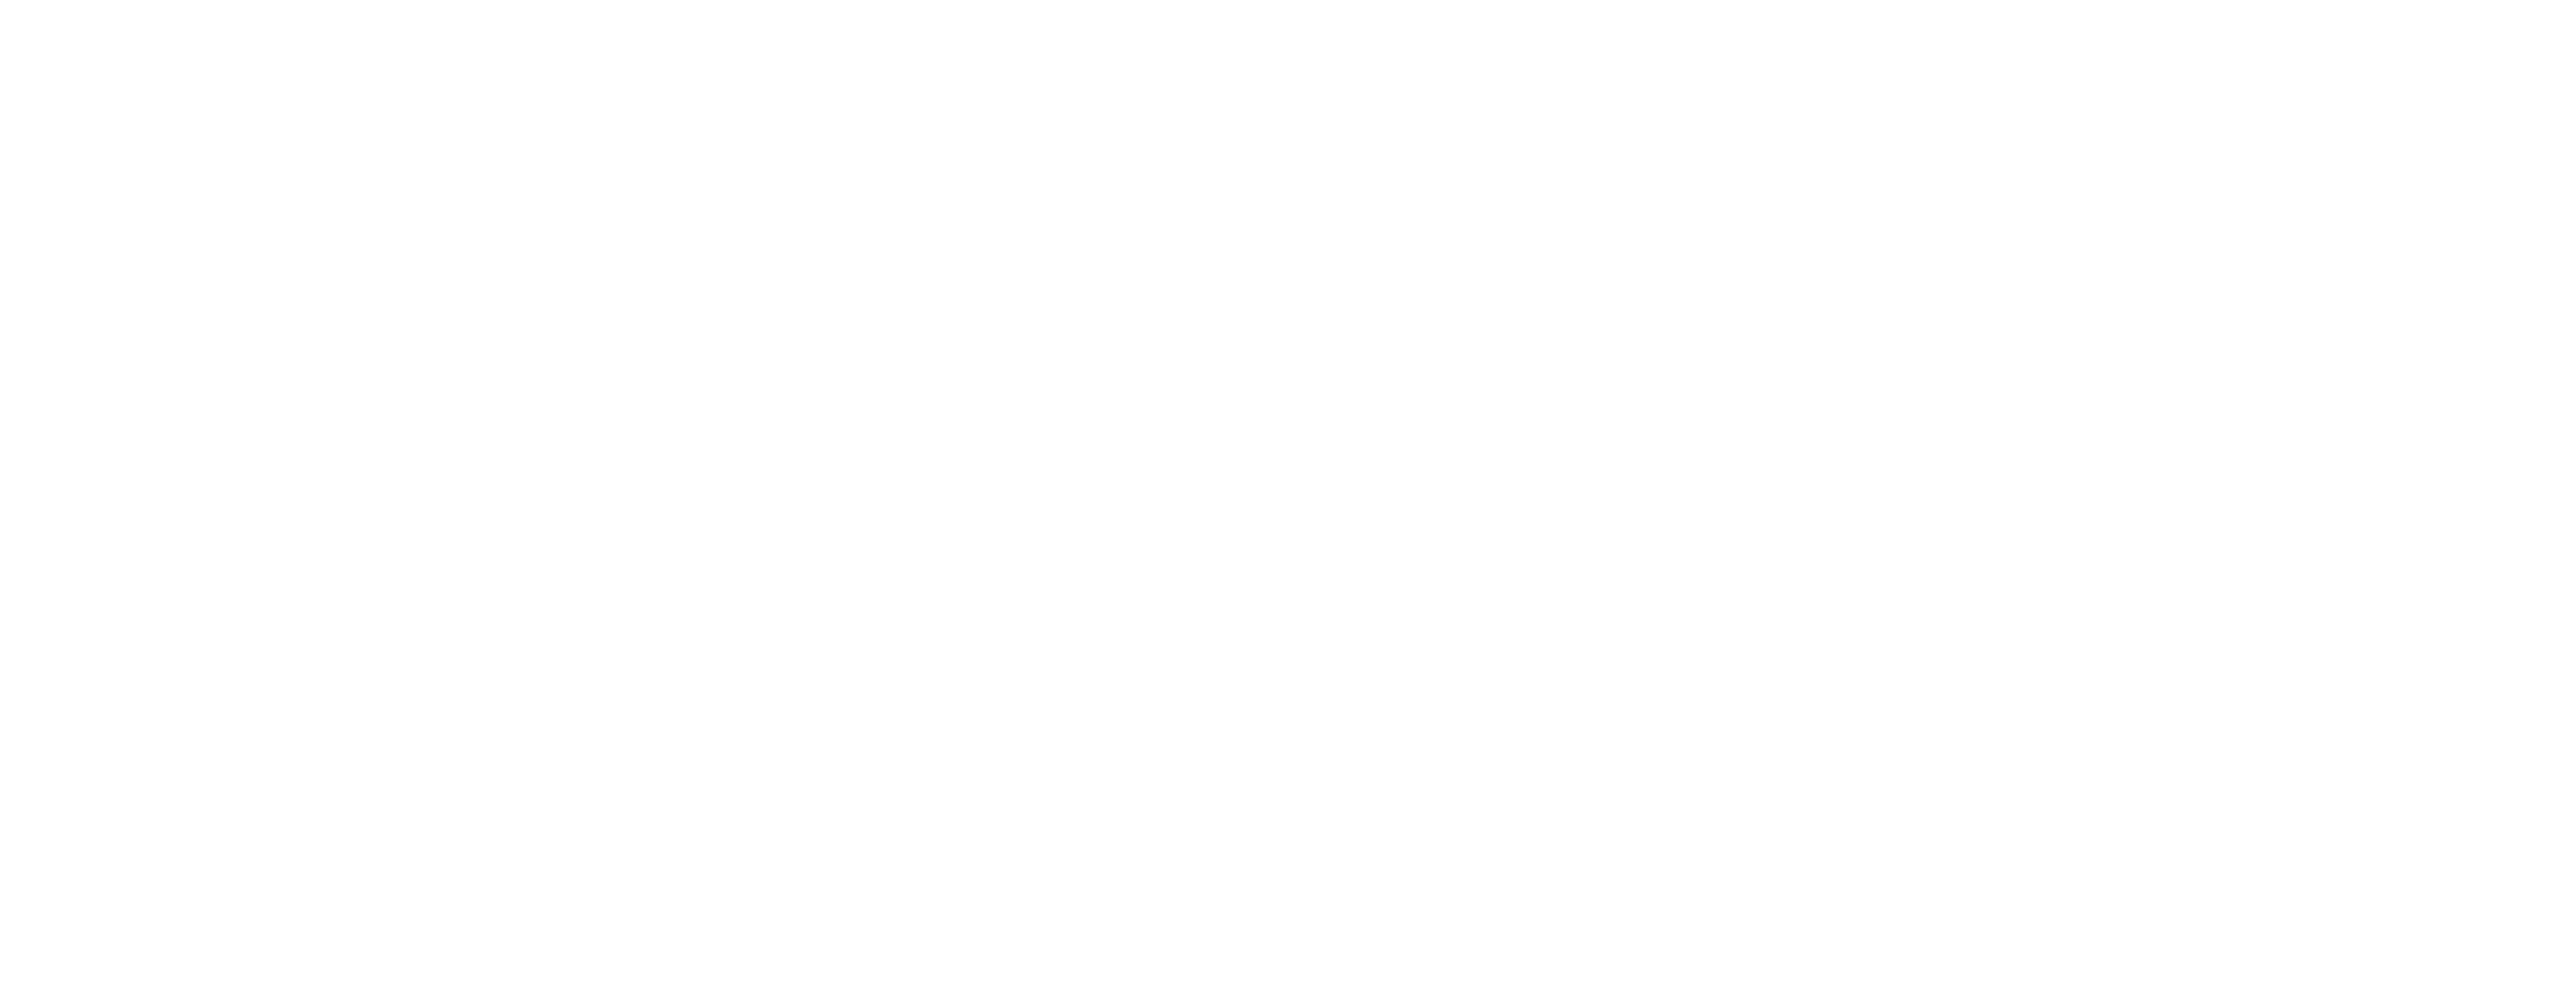 The Bedford Townhouse & Café